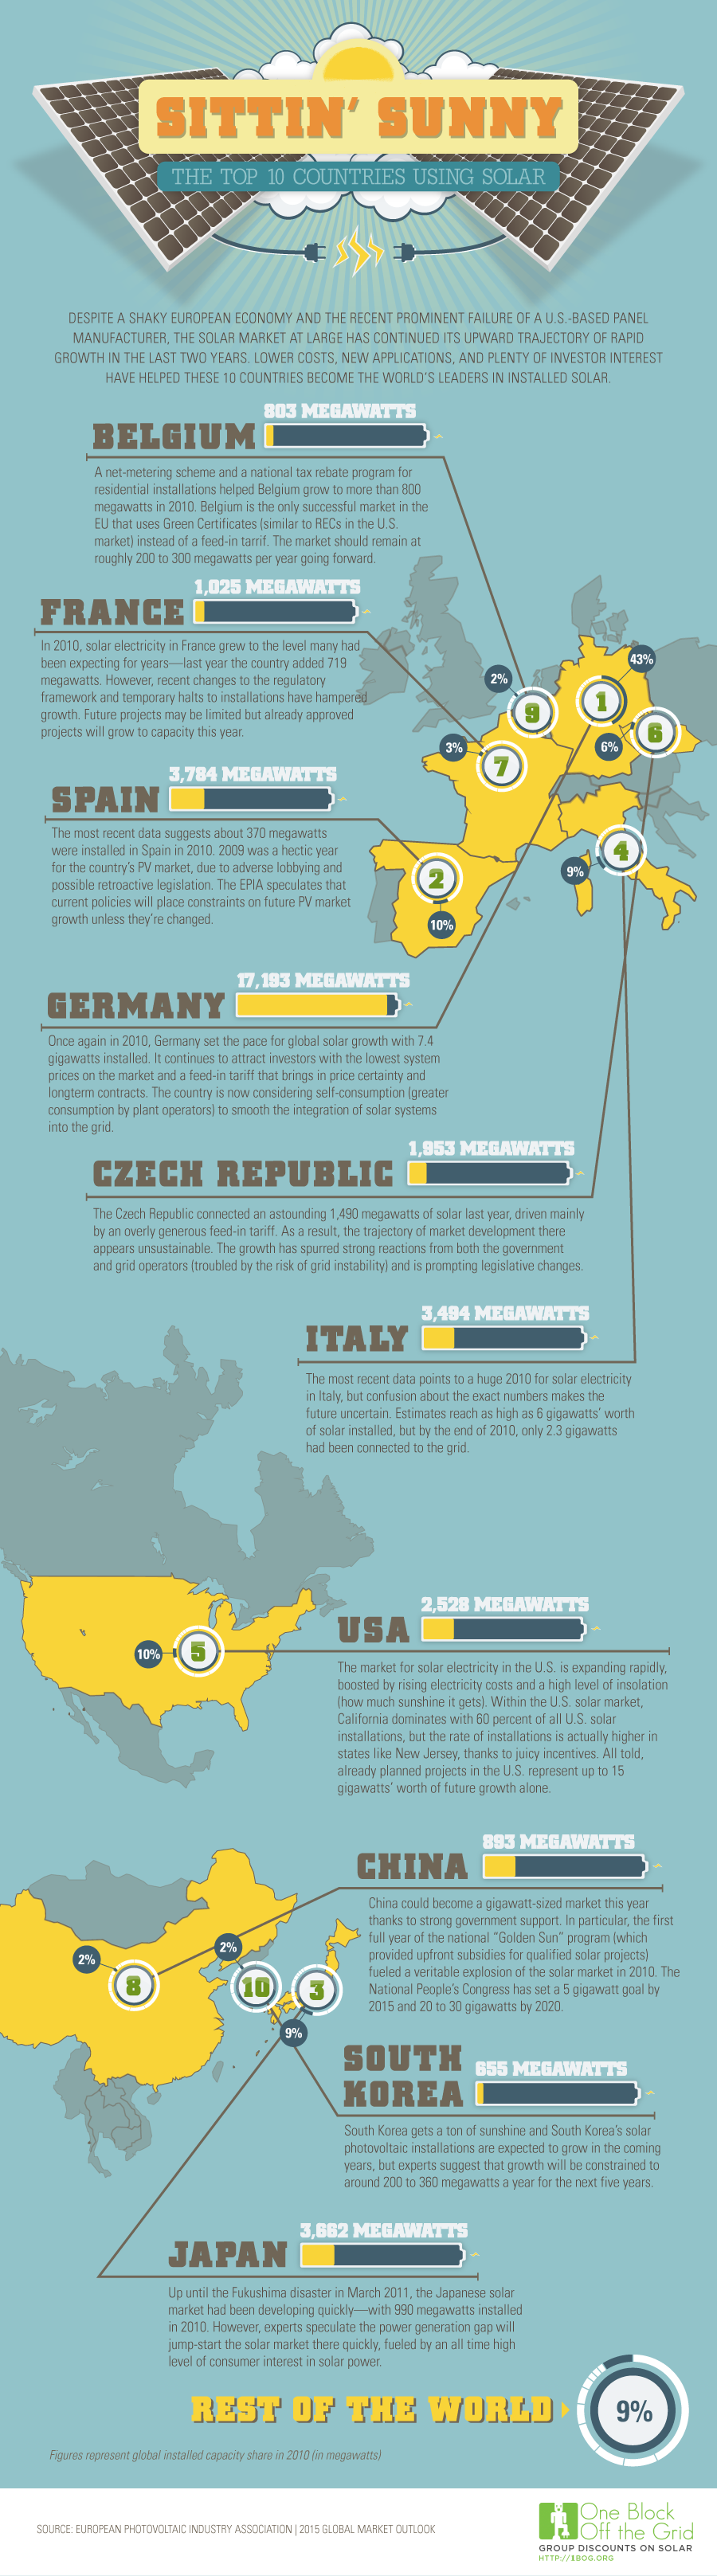 Infographic: The Top Ten Countries for Solar Energy Now